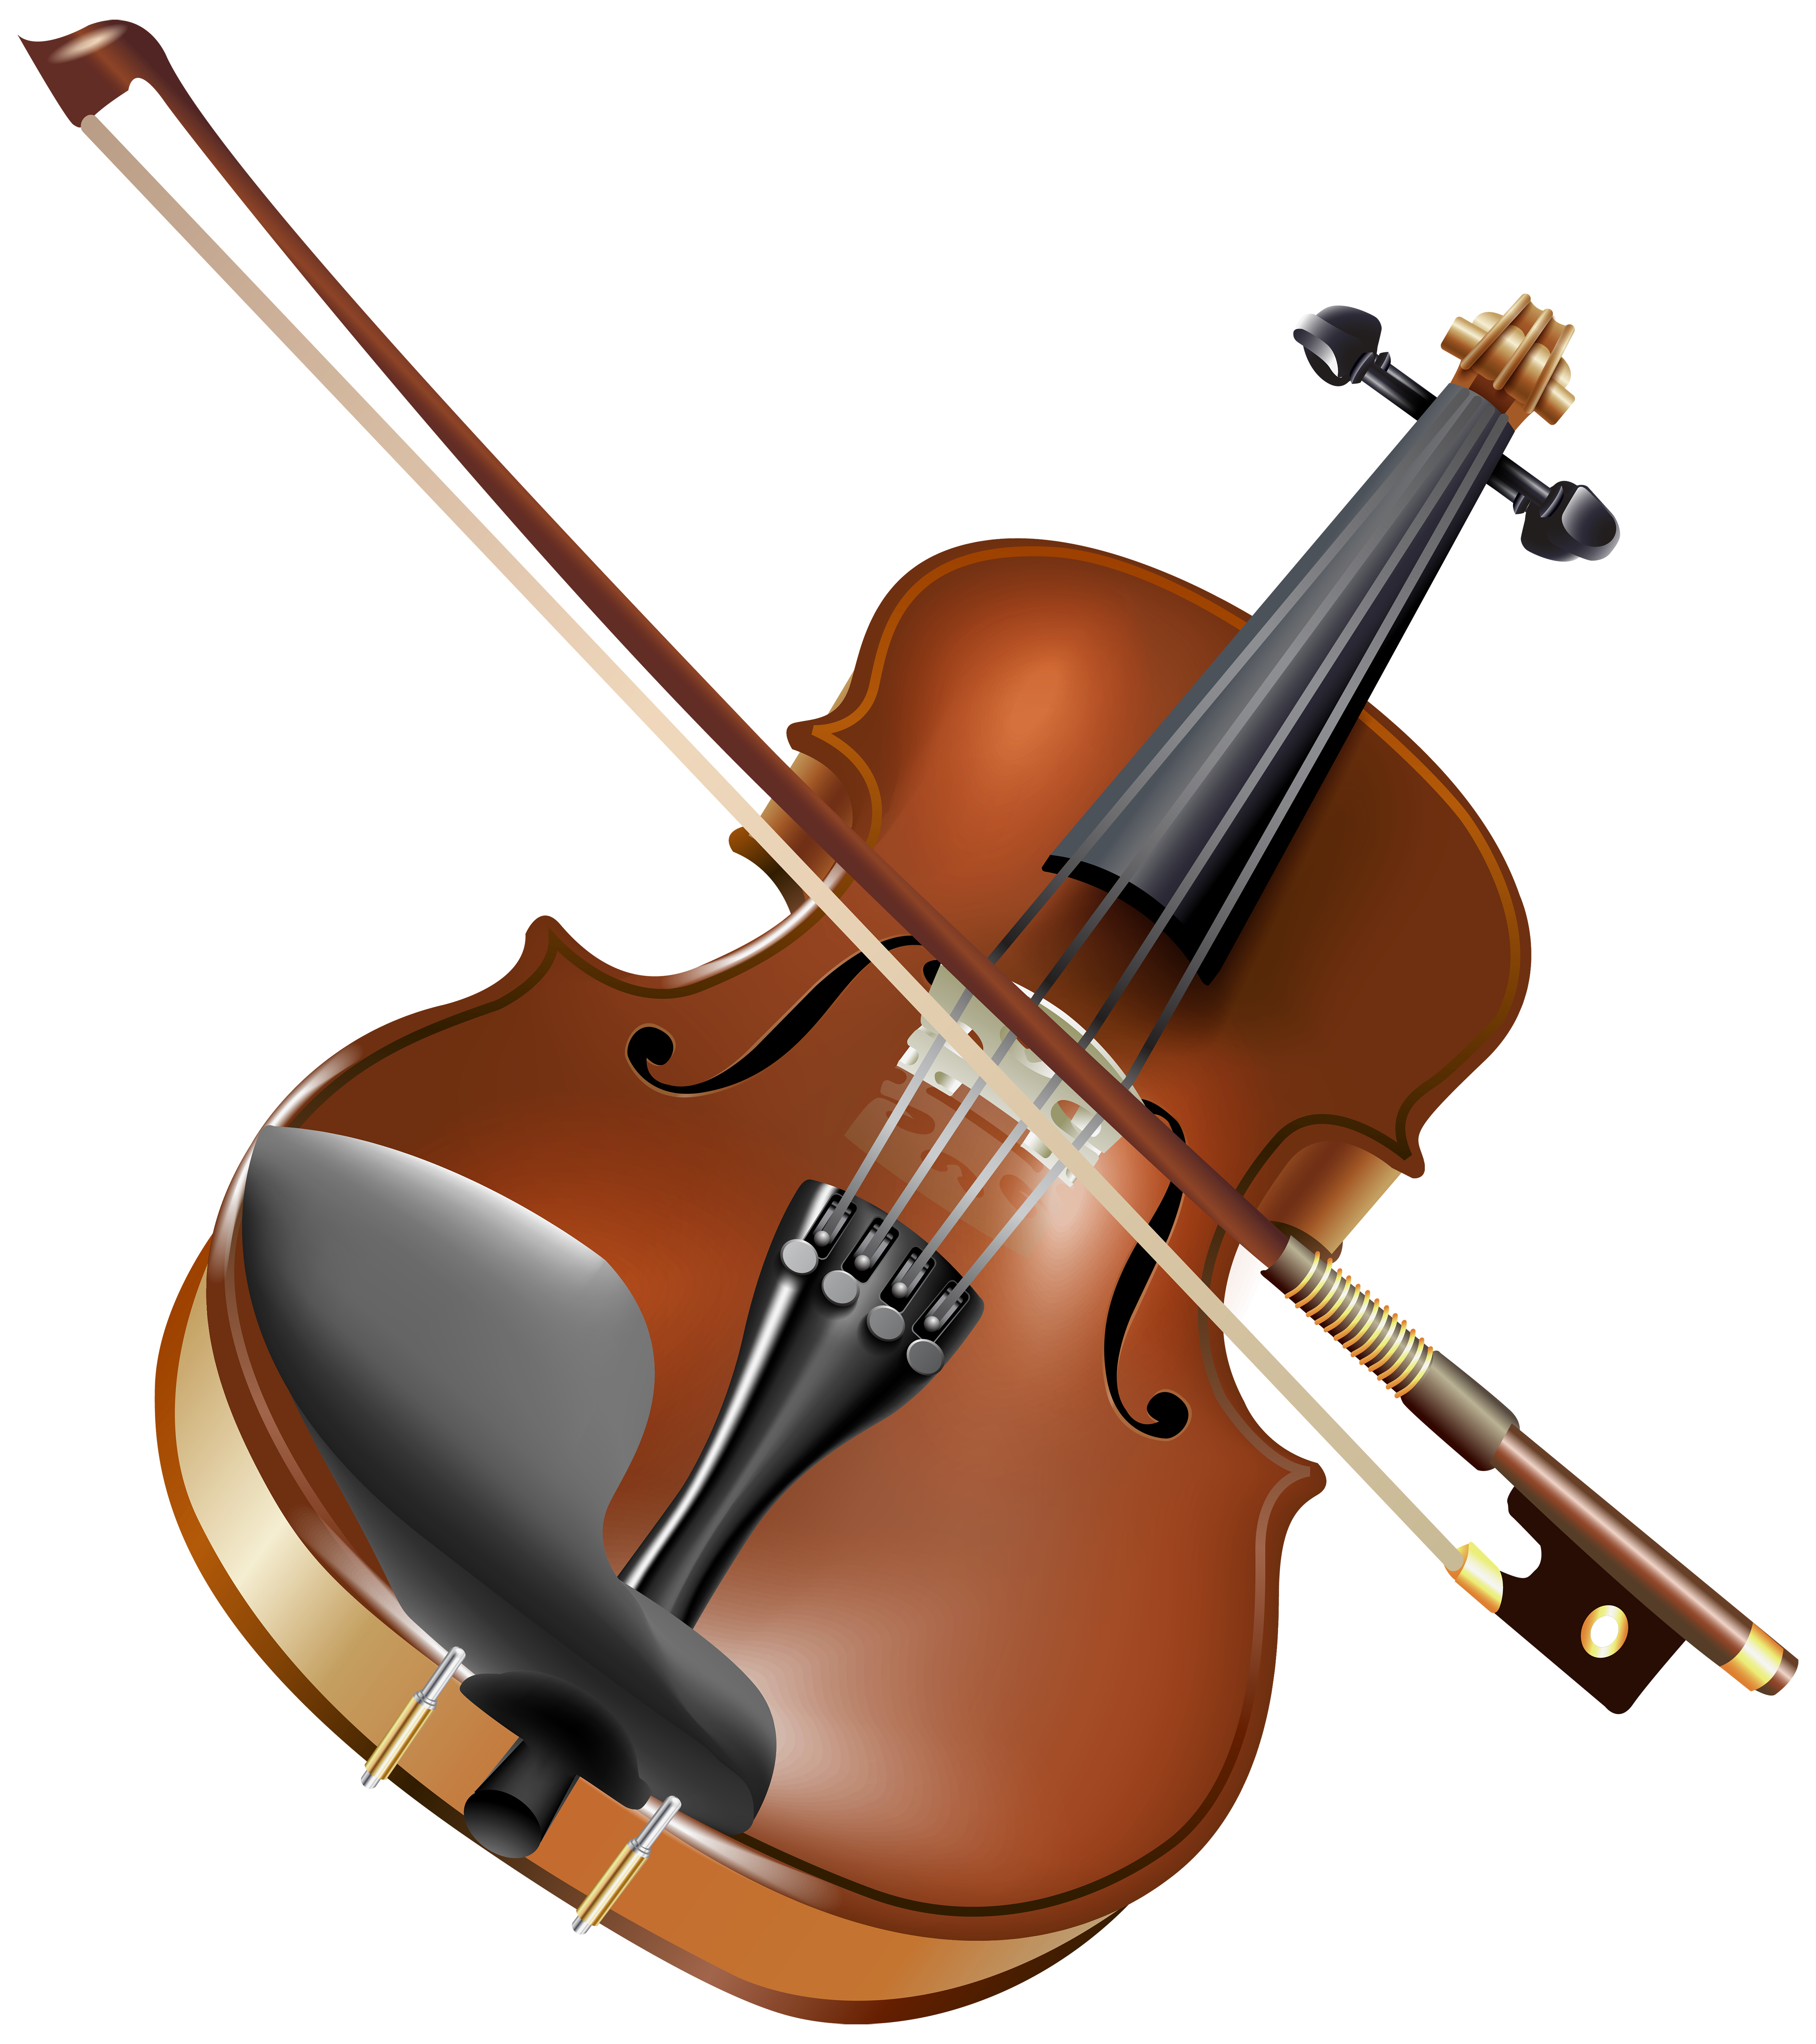 Violin png clipart image transparent library Violin PNG Clipart - Best WEB Clipart image transparent library